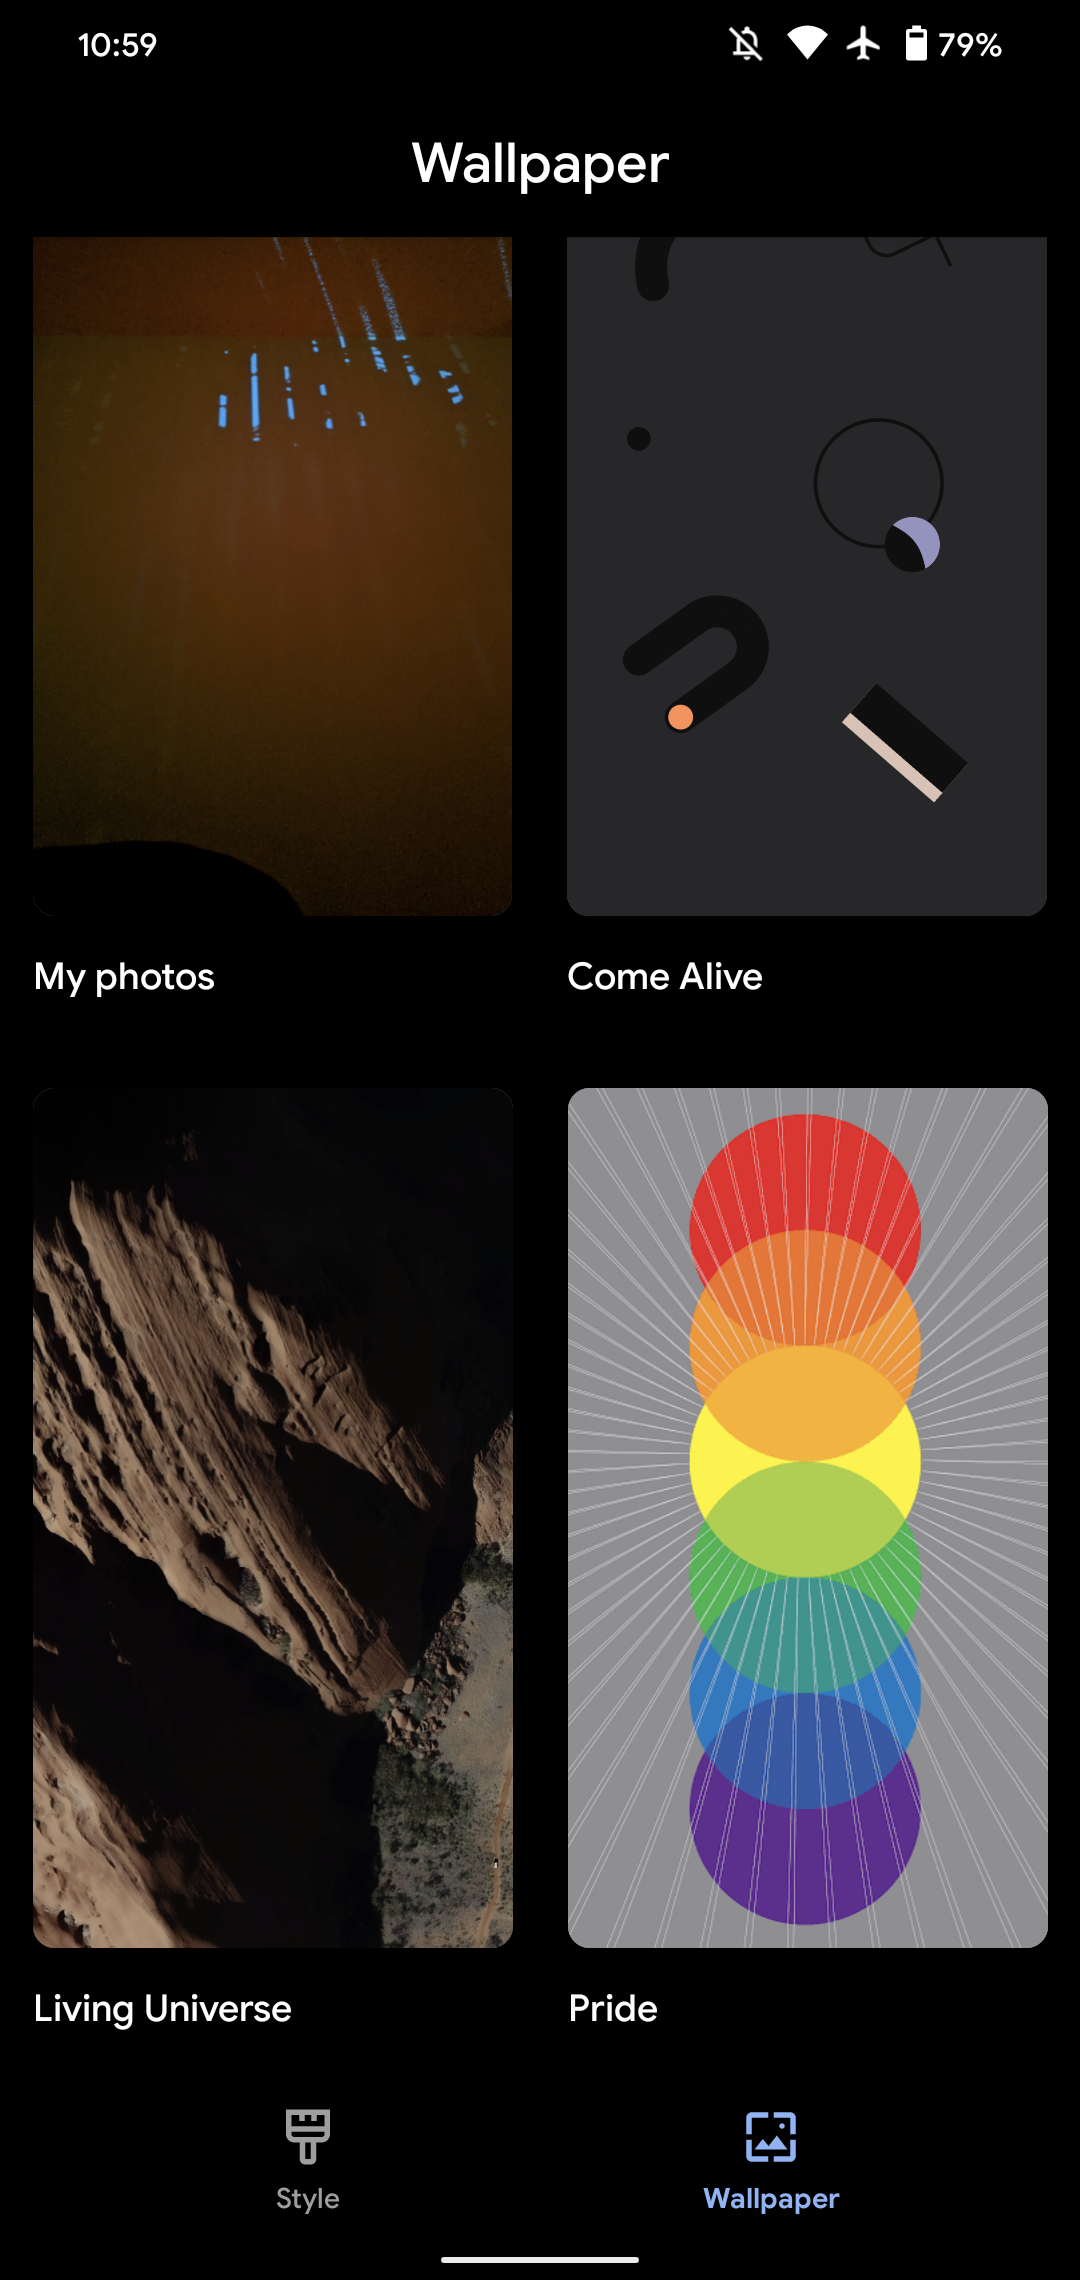 Google Wallpapers For Android Adds New Pride Backgrounds 9to5google